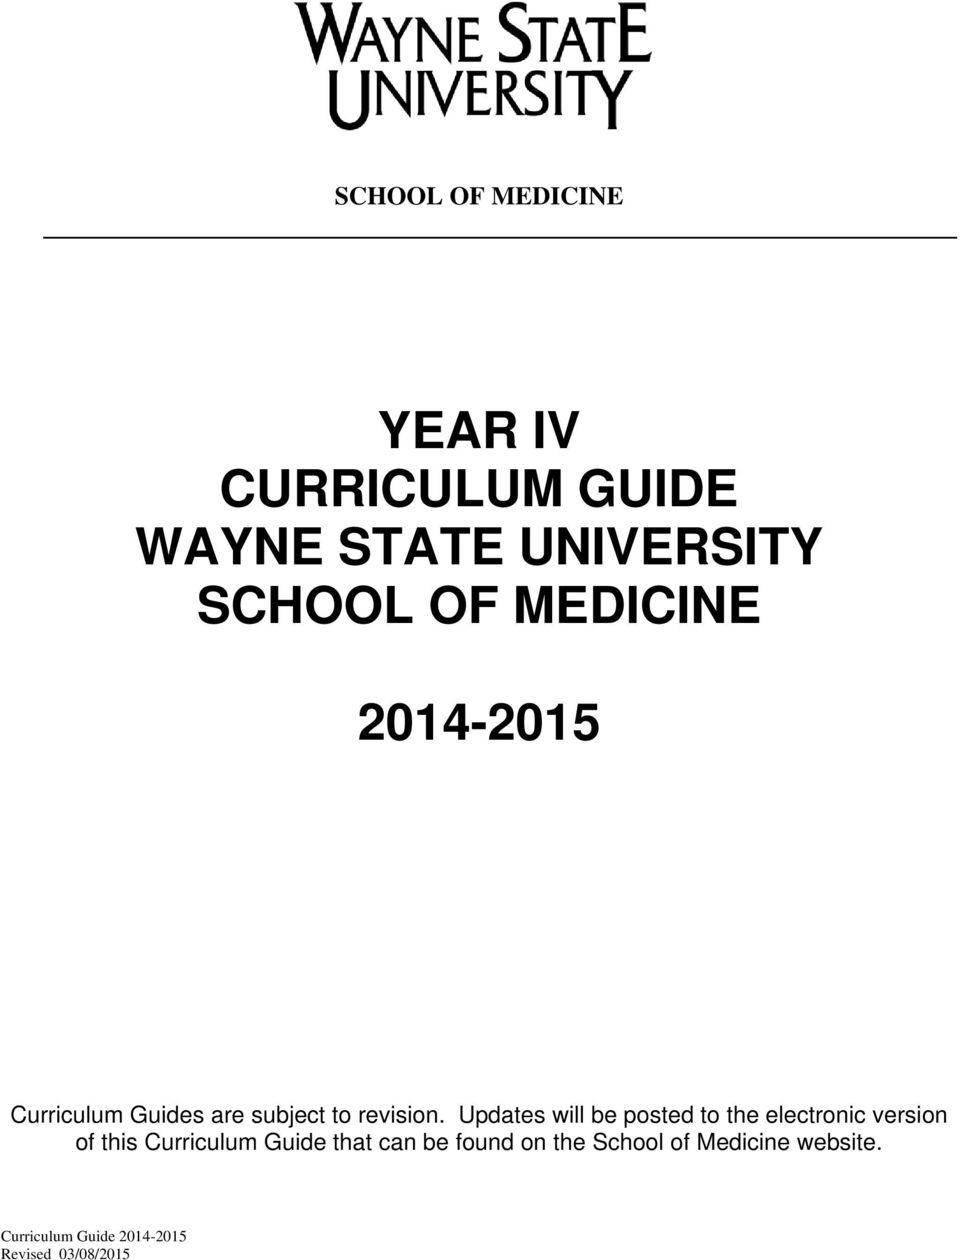 Updates will be posted to the electronic version of this Curriculum Guide